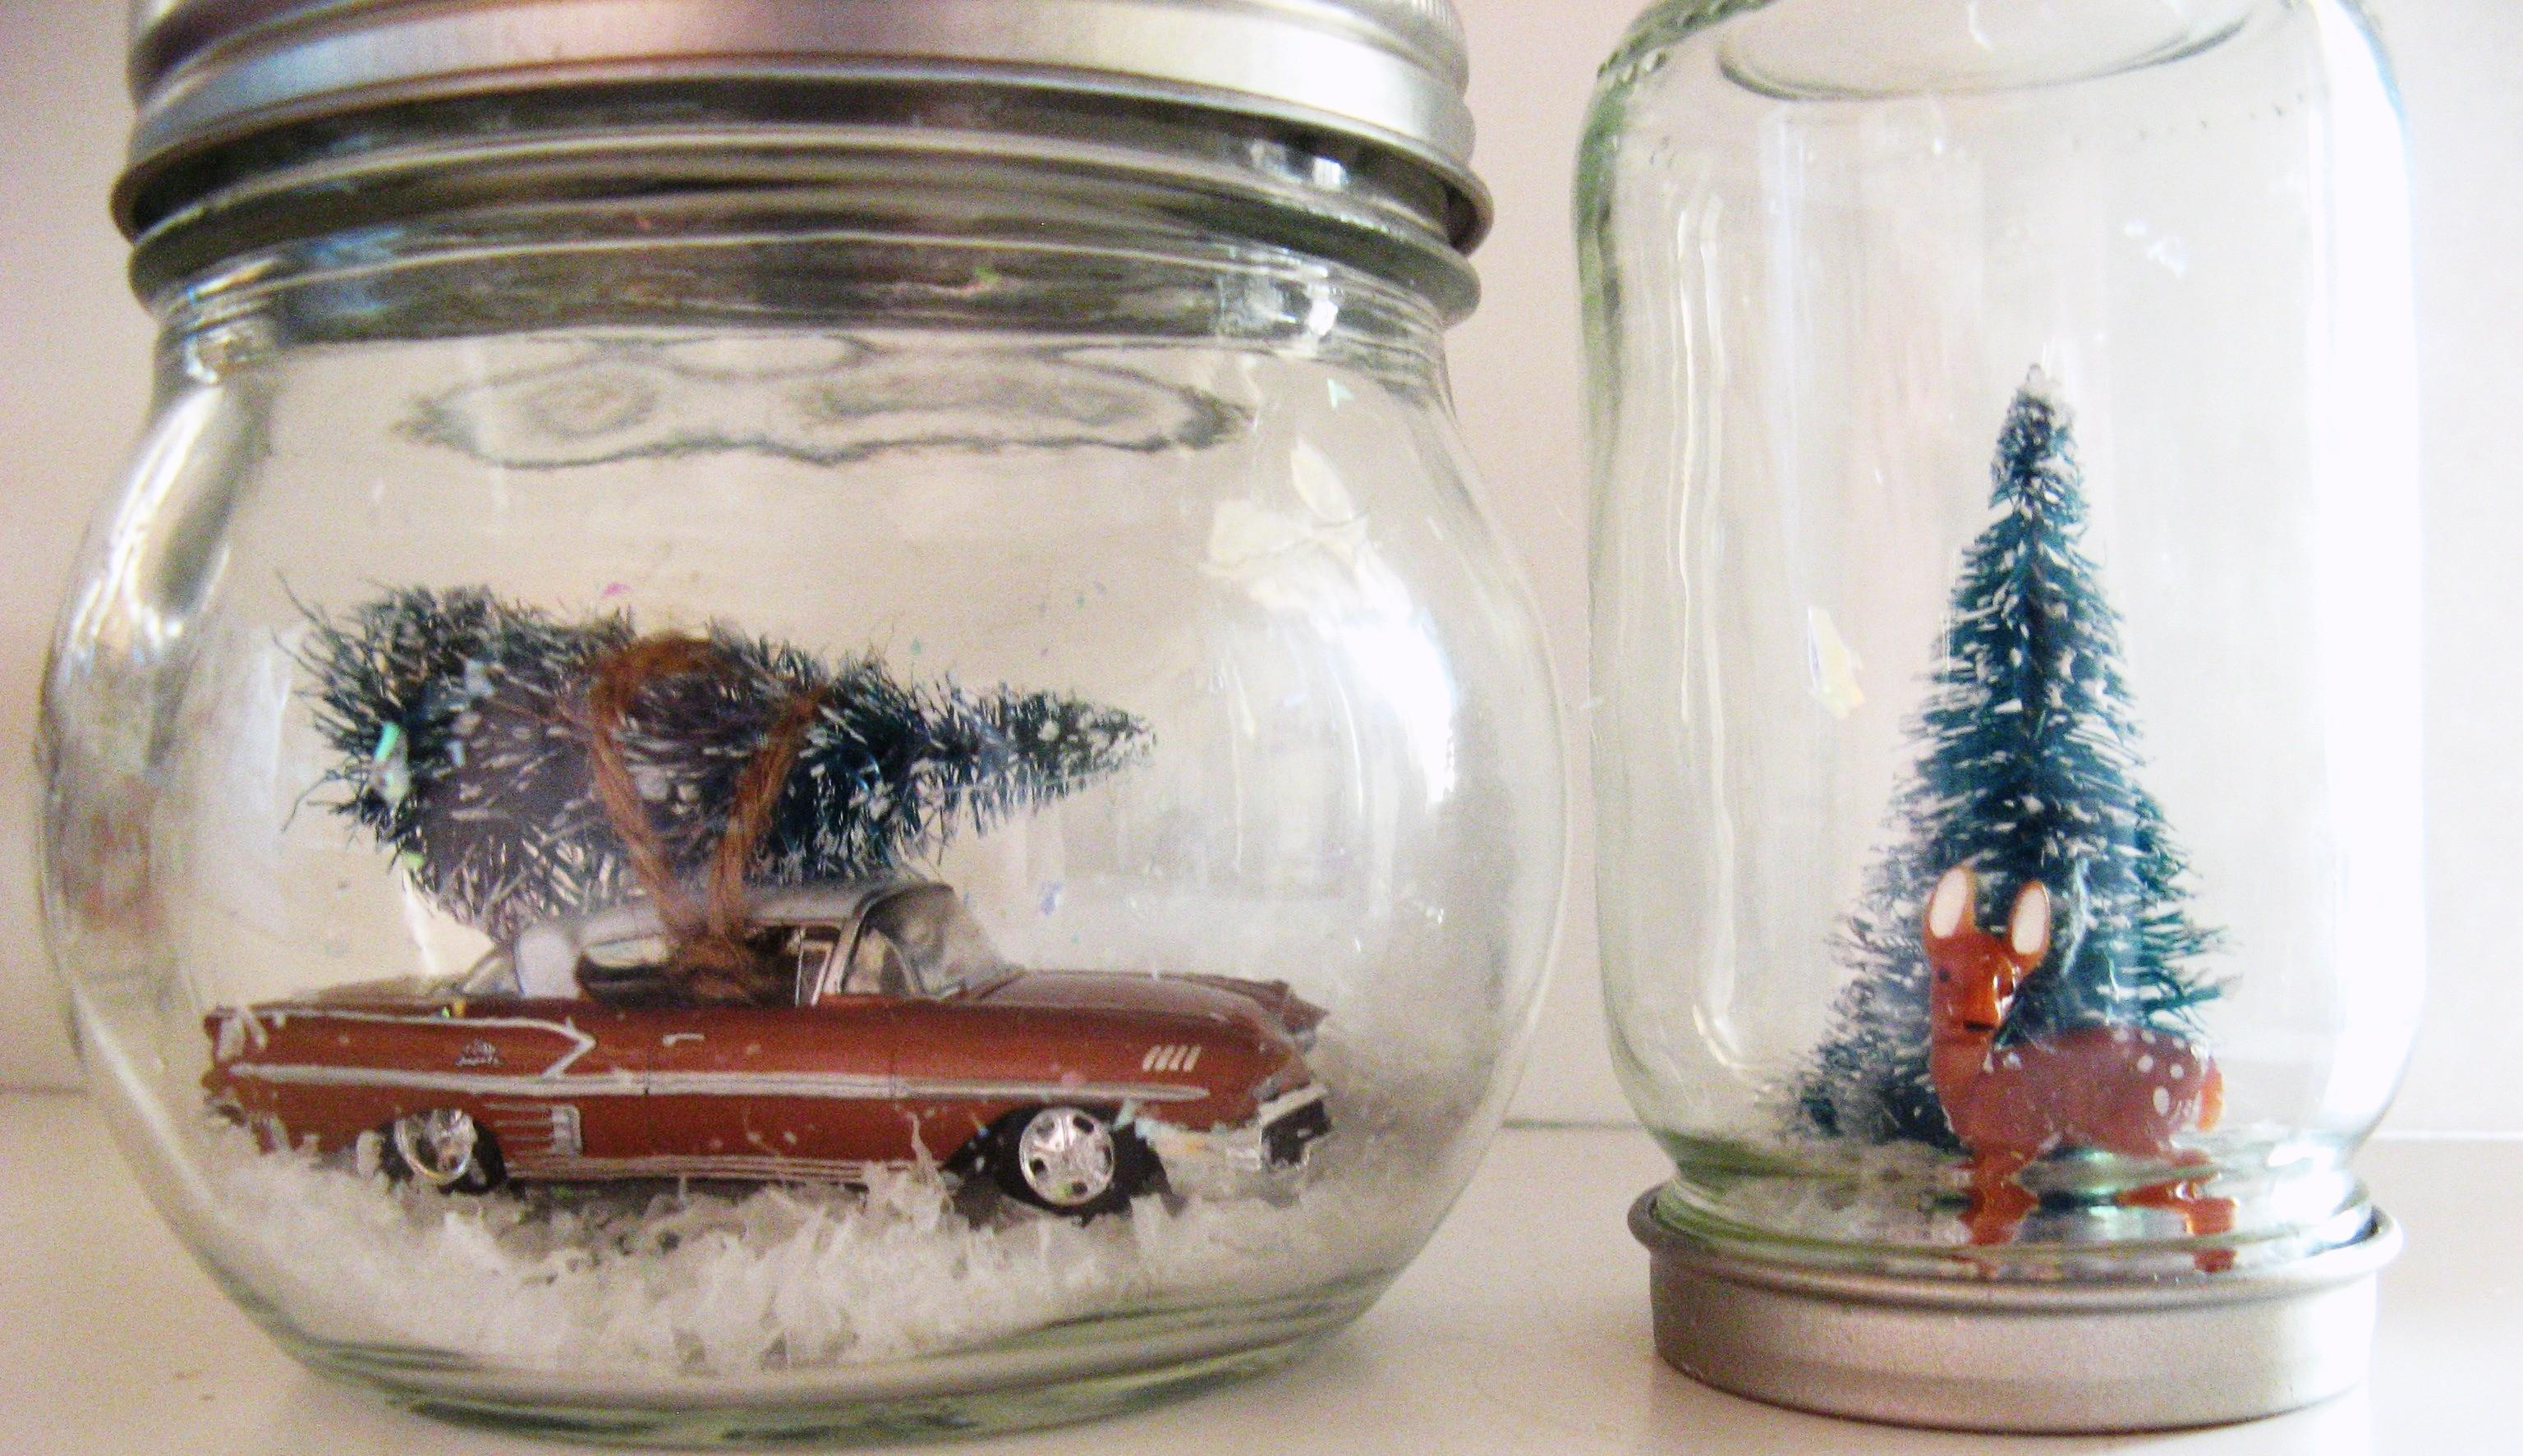 Snow Globe Ornaments Somewhere Middle